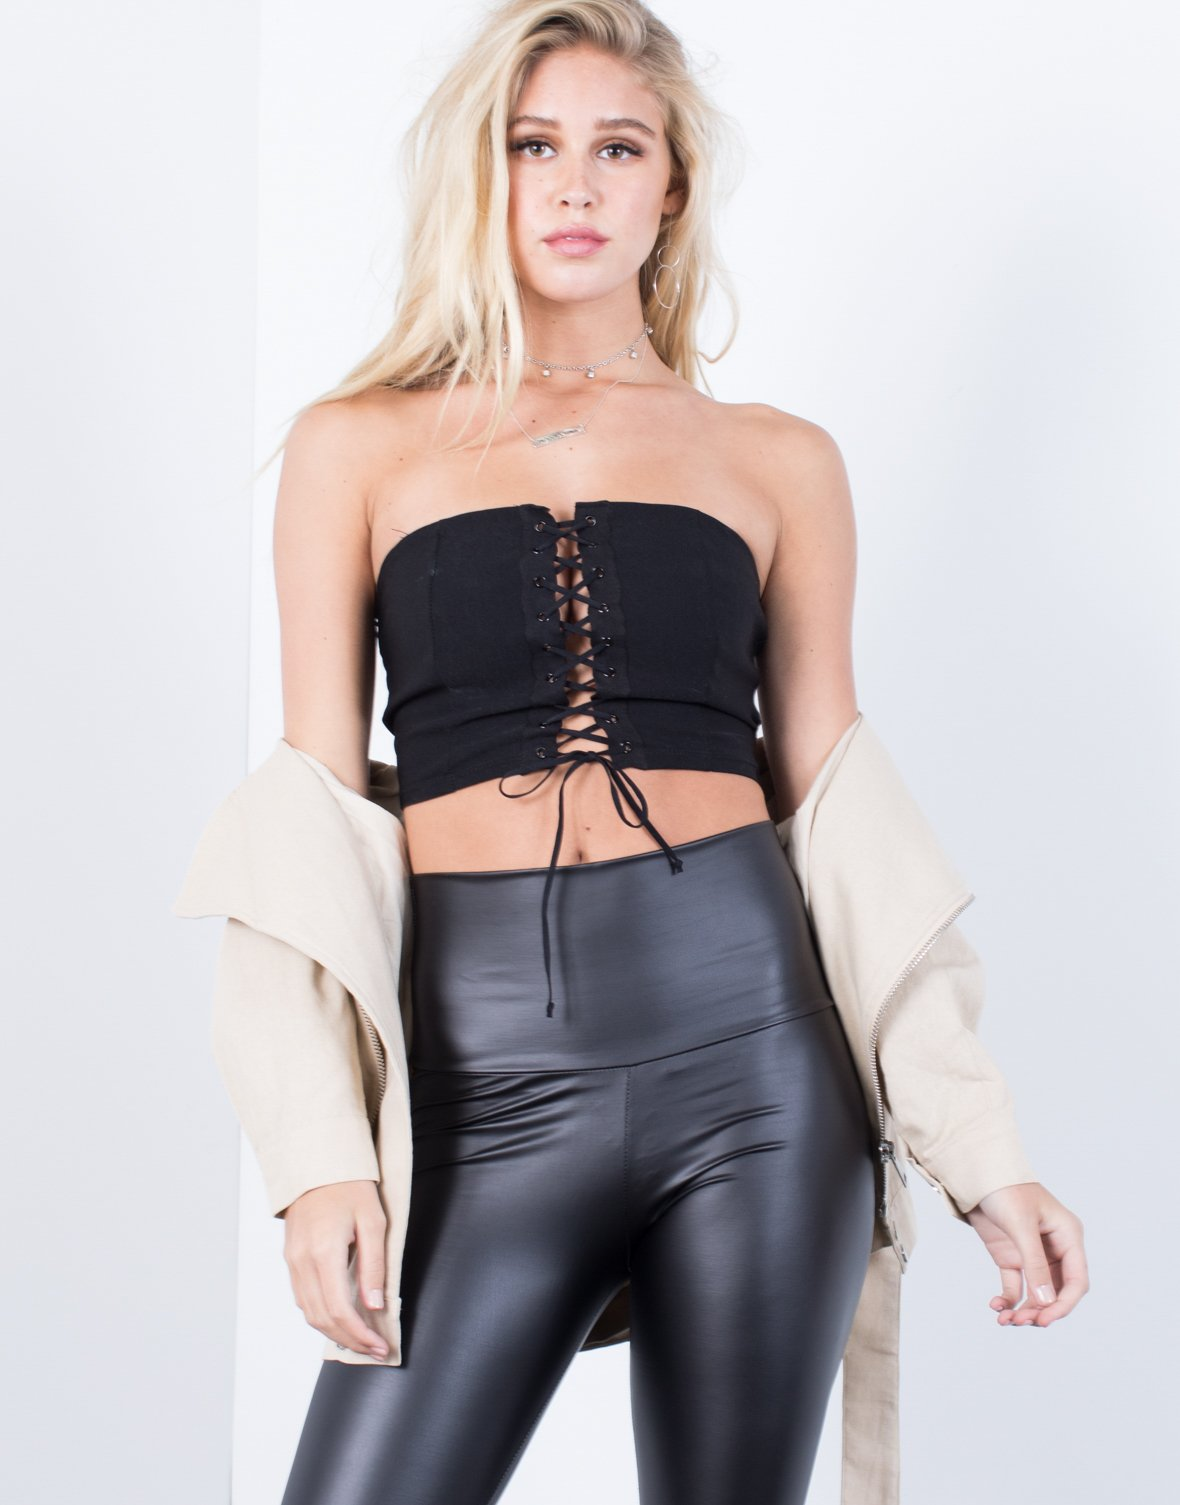 Laced up tube top 2020ave for Tube top pictures